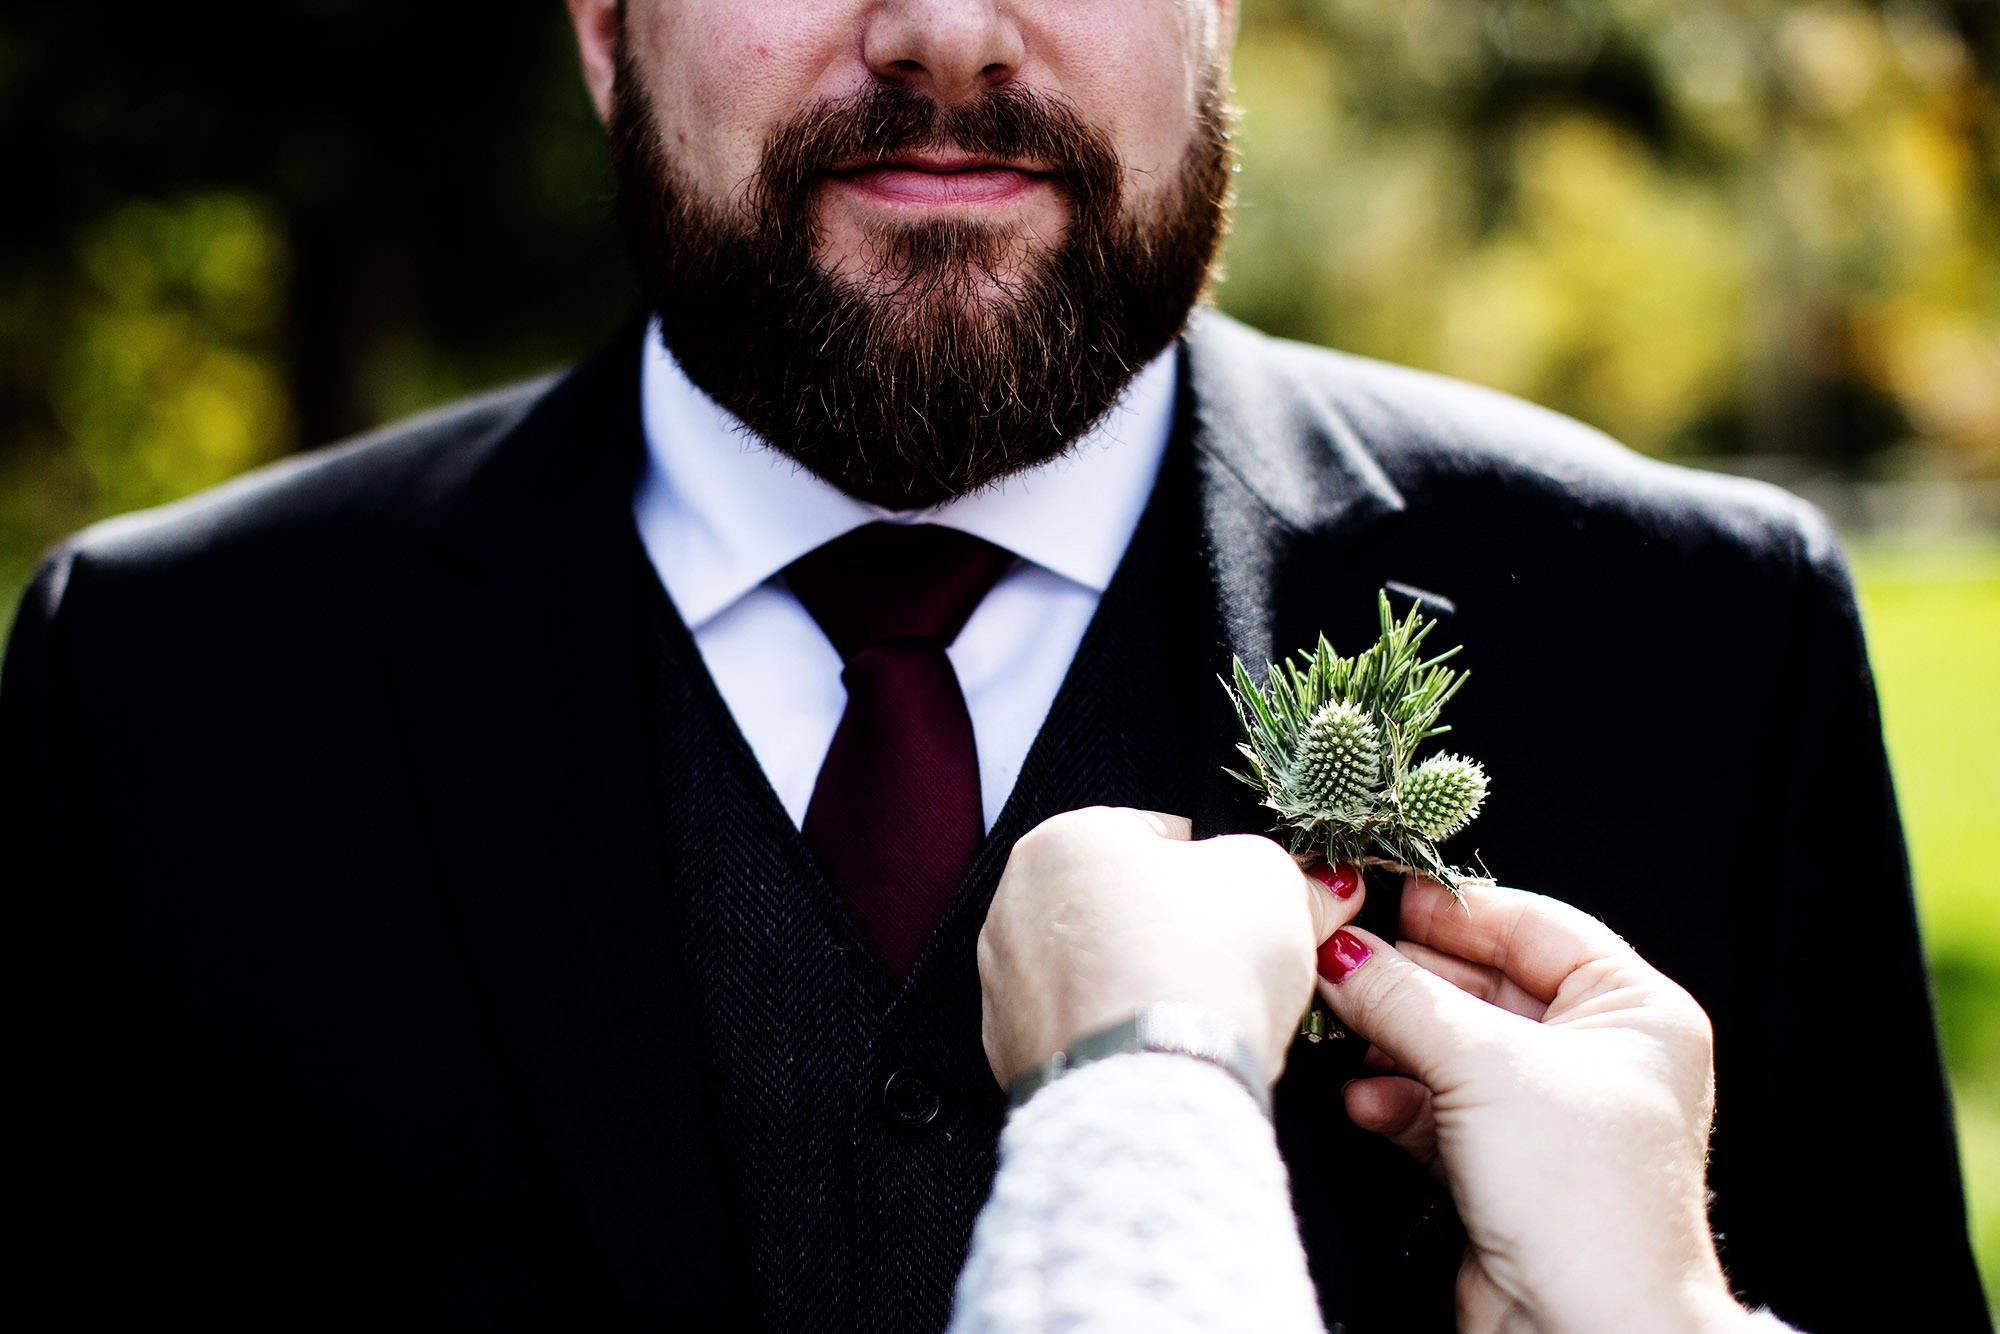 The groom puts on his Boutonniere prior to the ceremony at Mad River Barn.